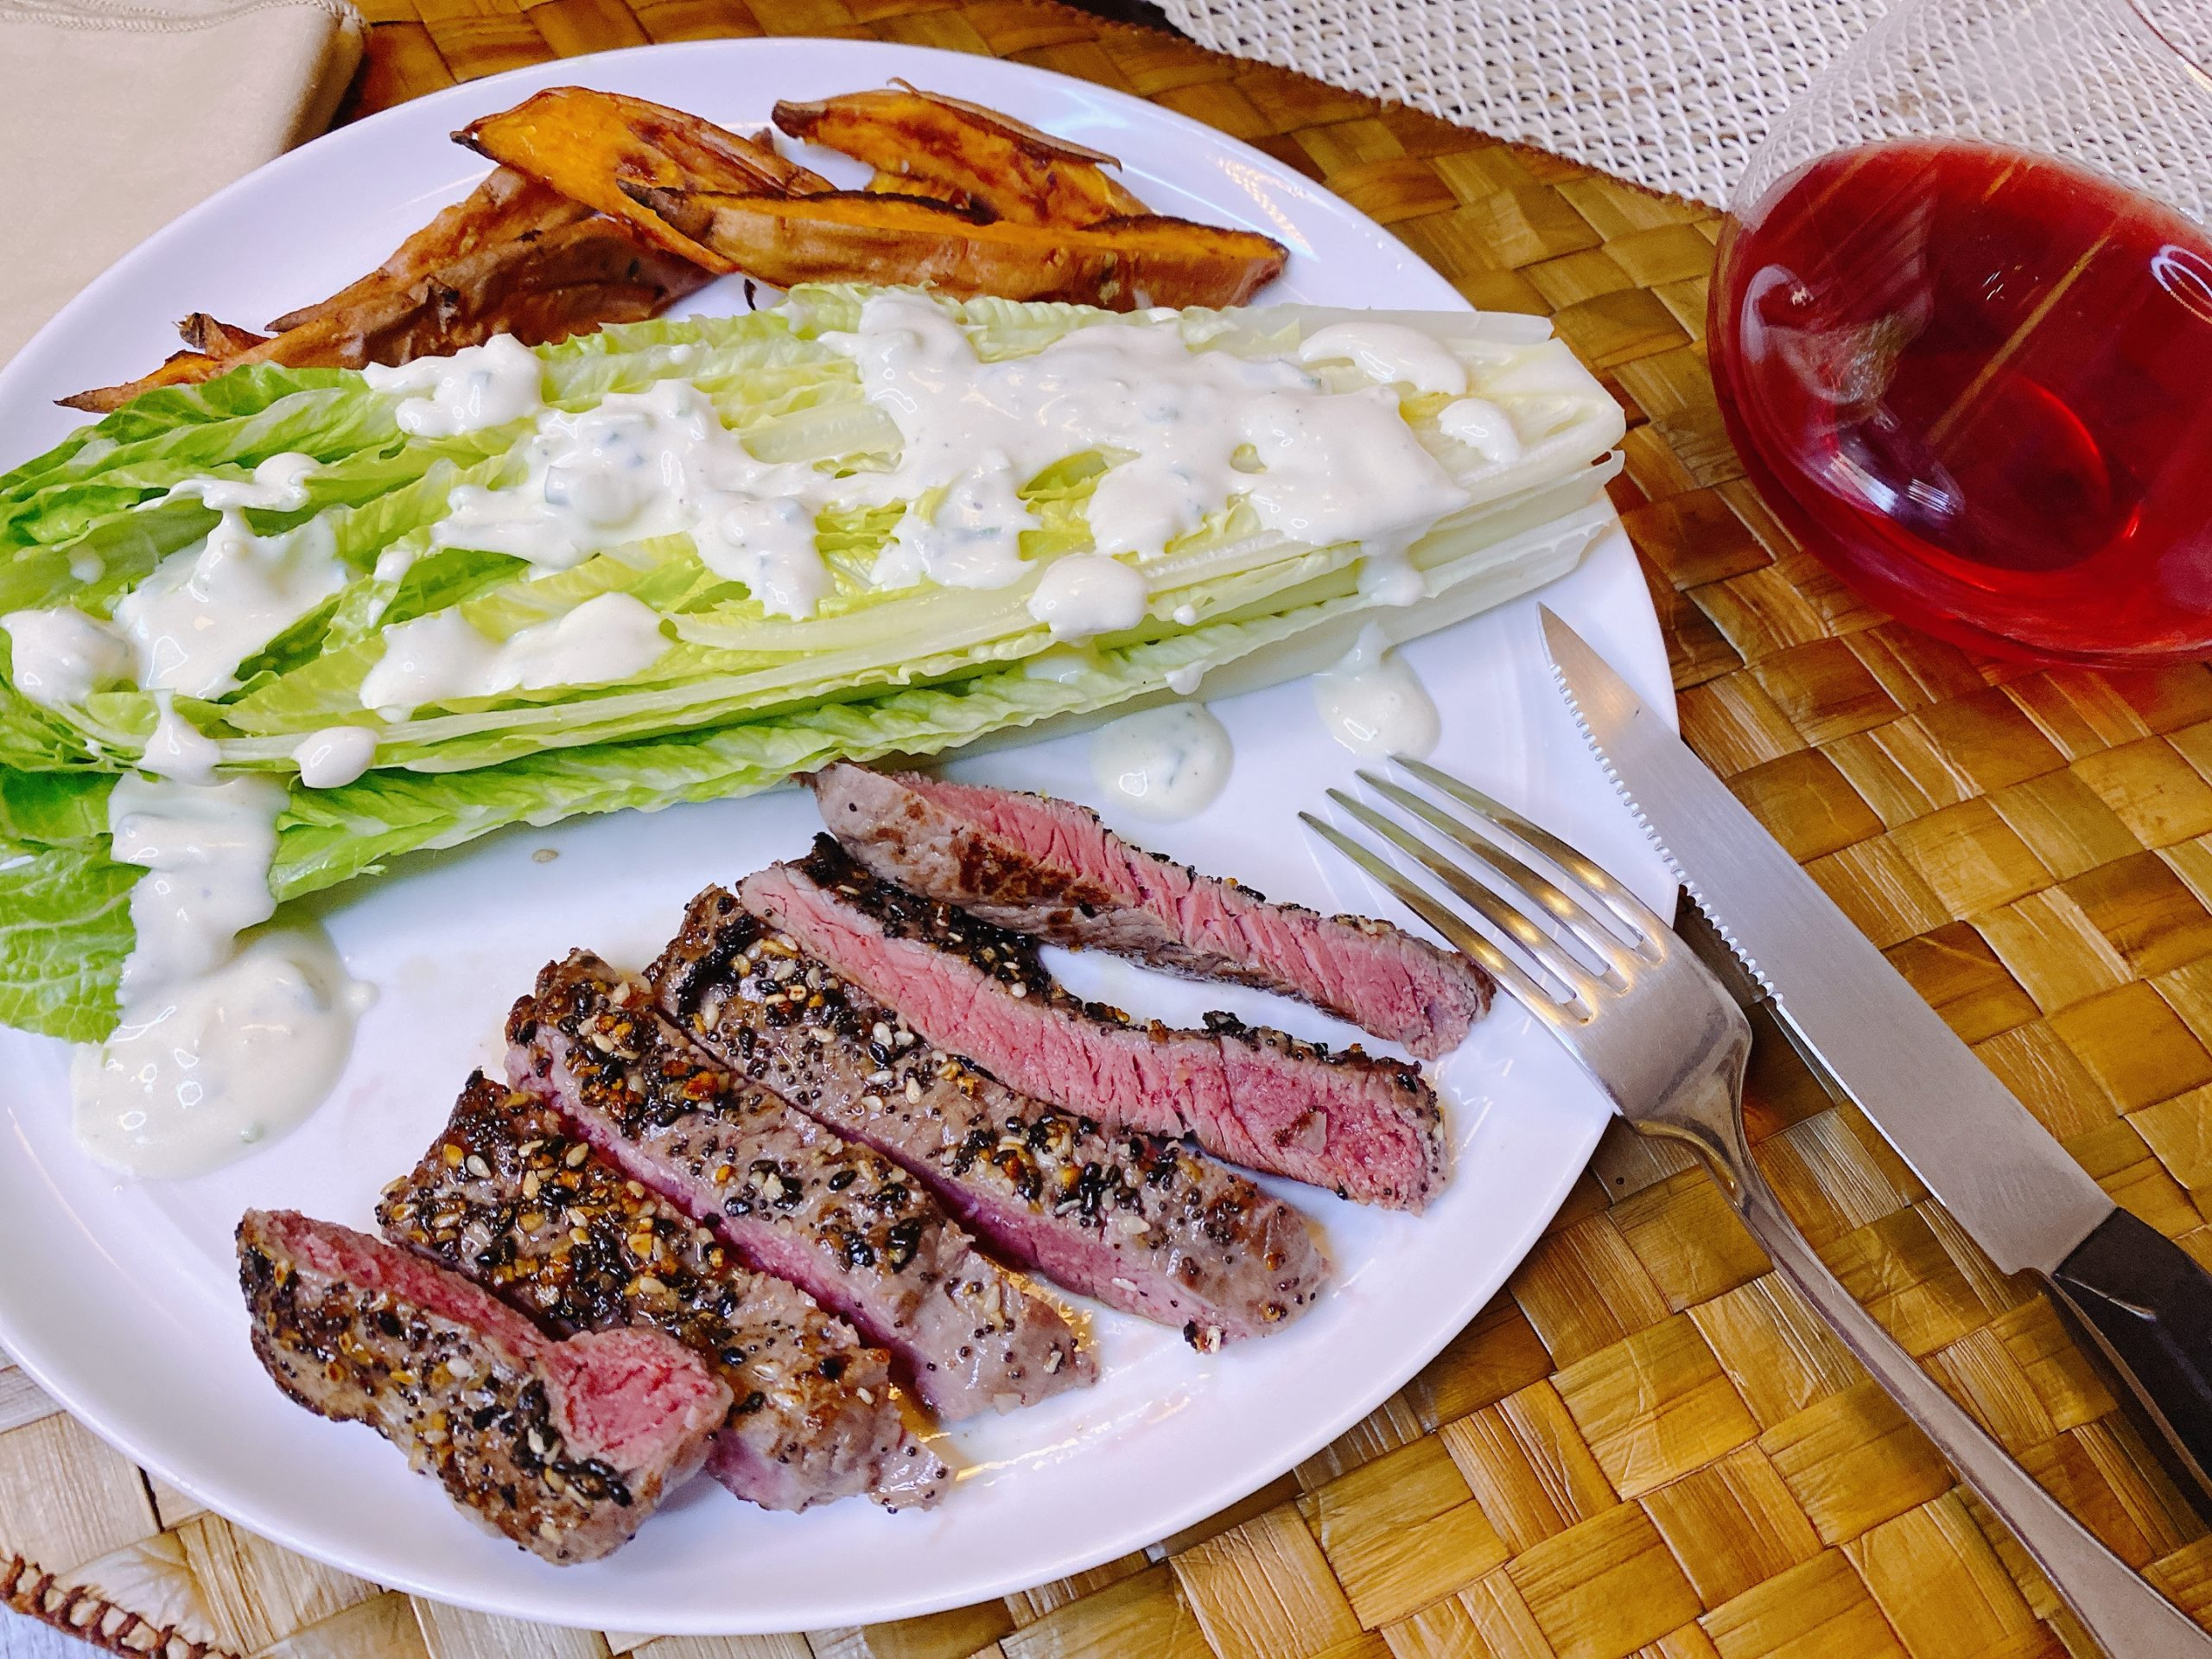 Sirloin Steak from Perdue Farms, sliced on plate with lettuce wedge and potatoes